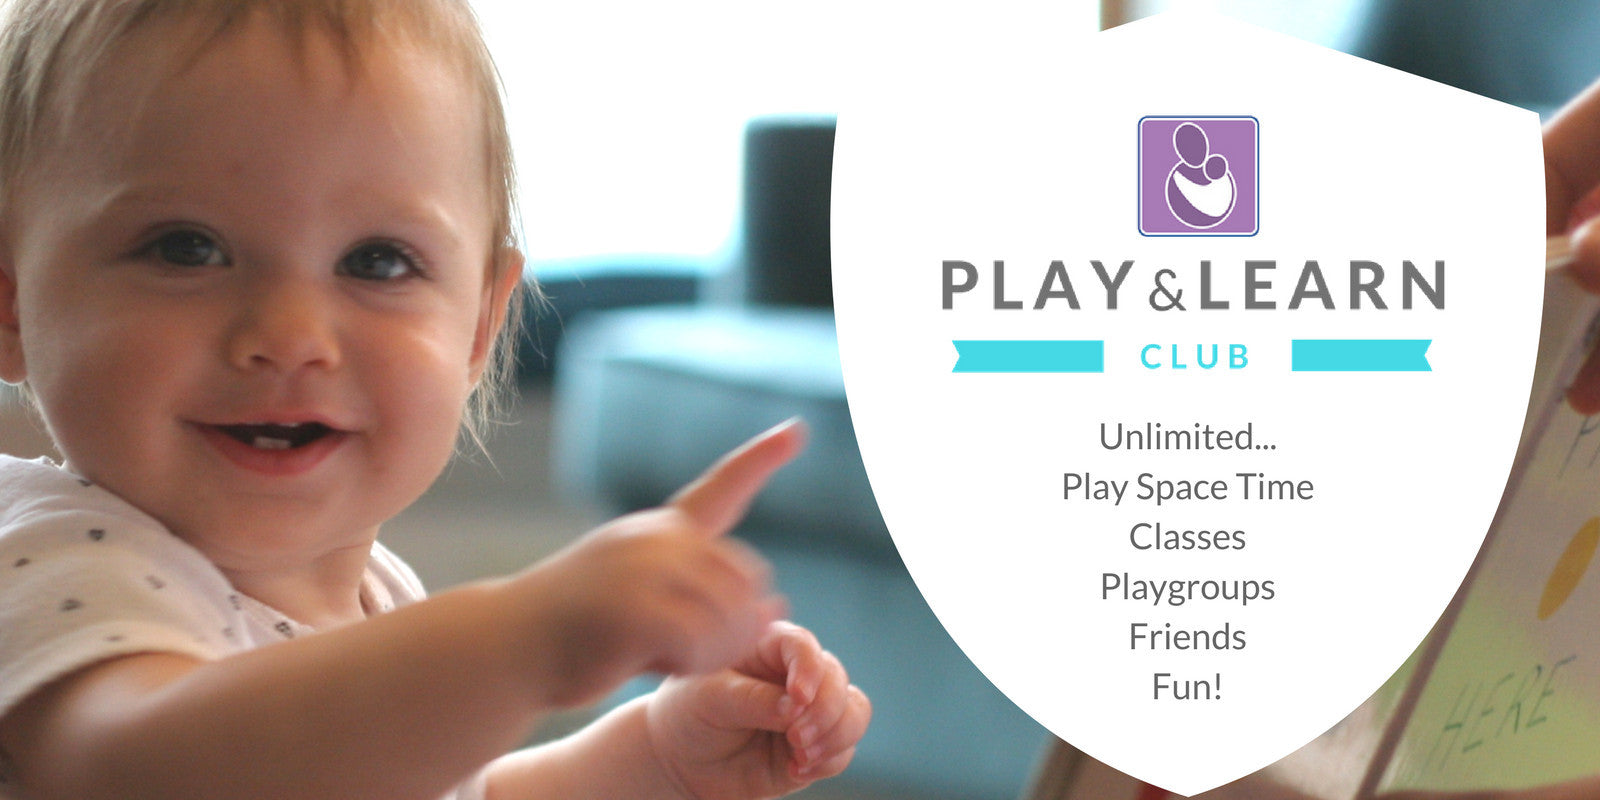 Play & Learn Club